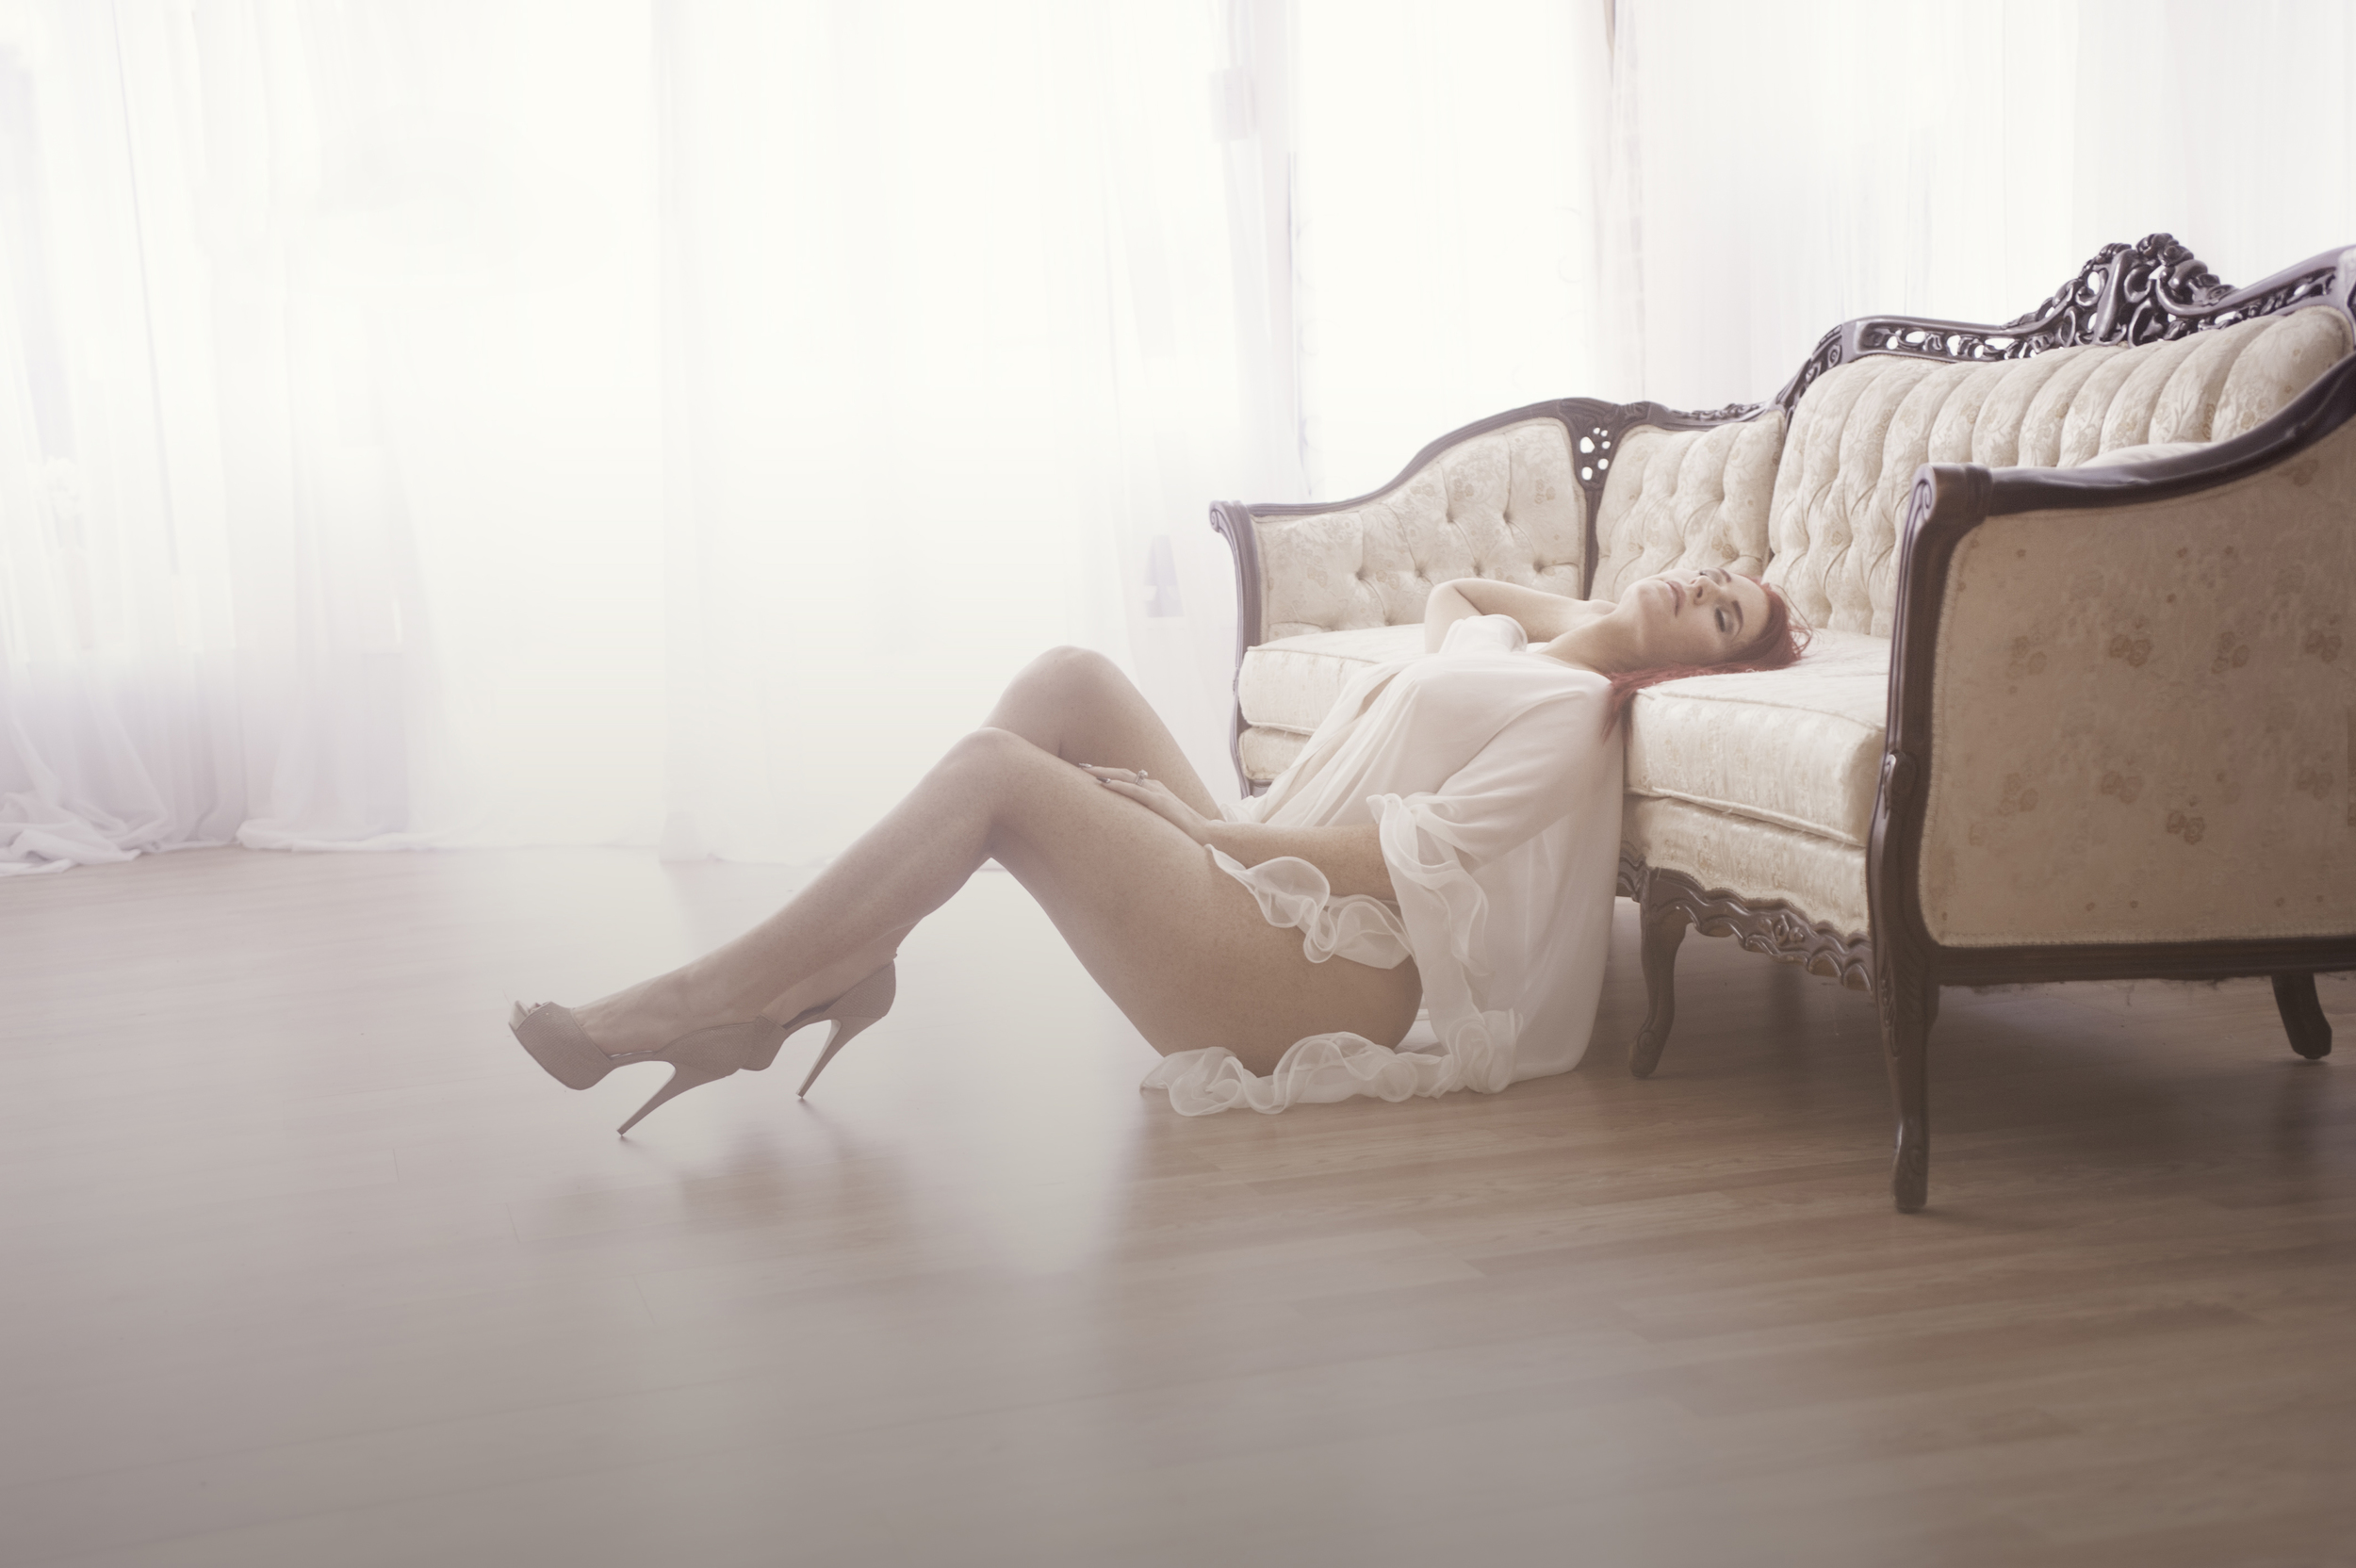 JTNoir_Photography_HP_Boudoir__2_10_2014.jpg